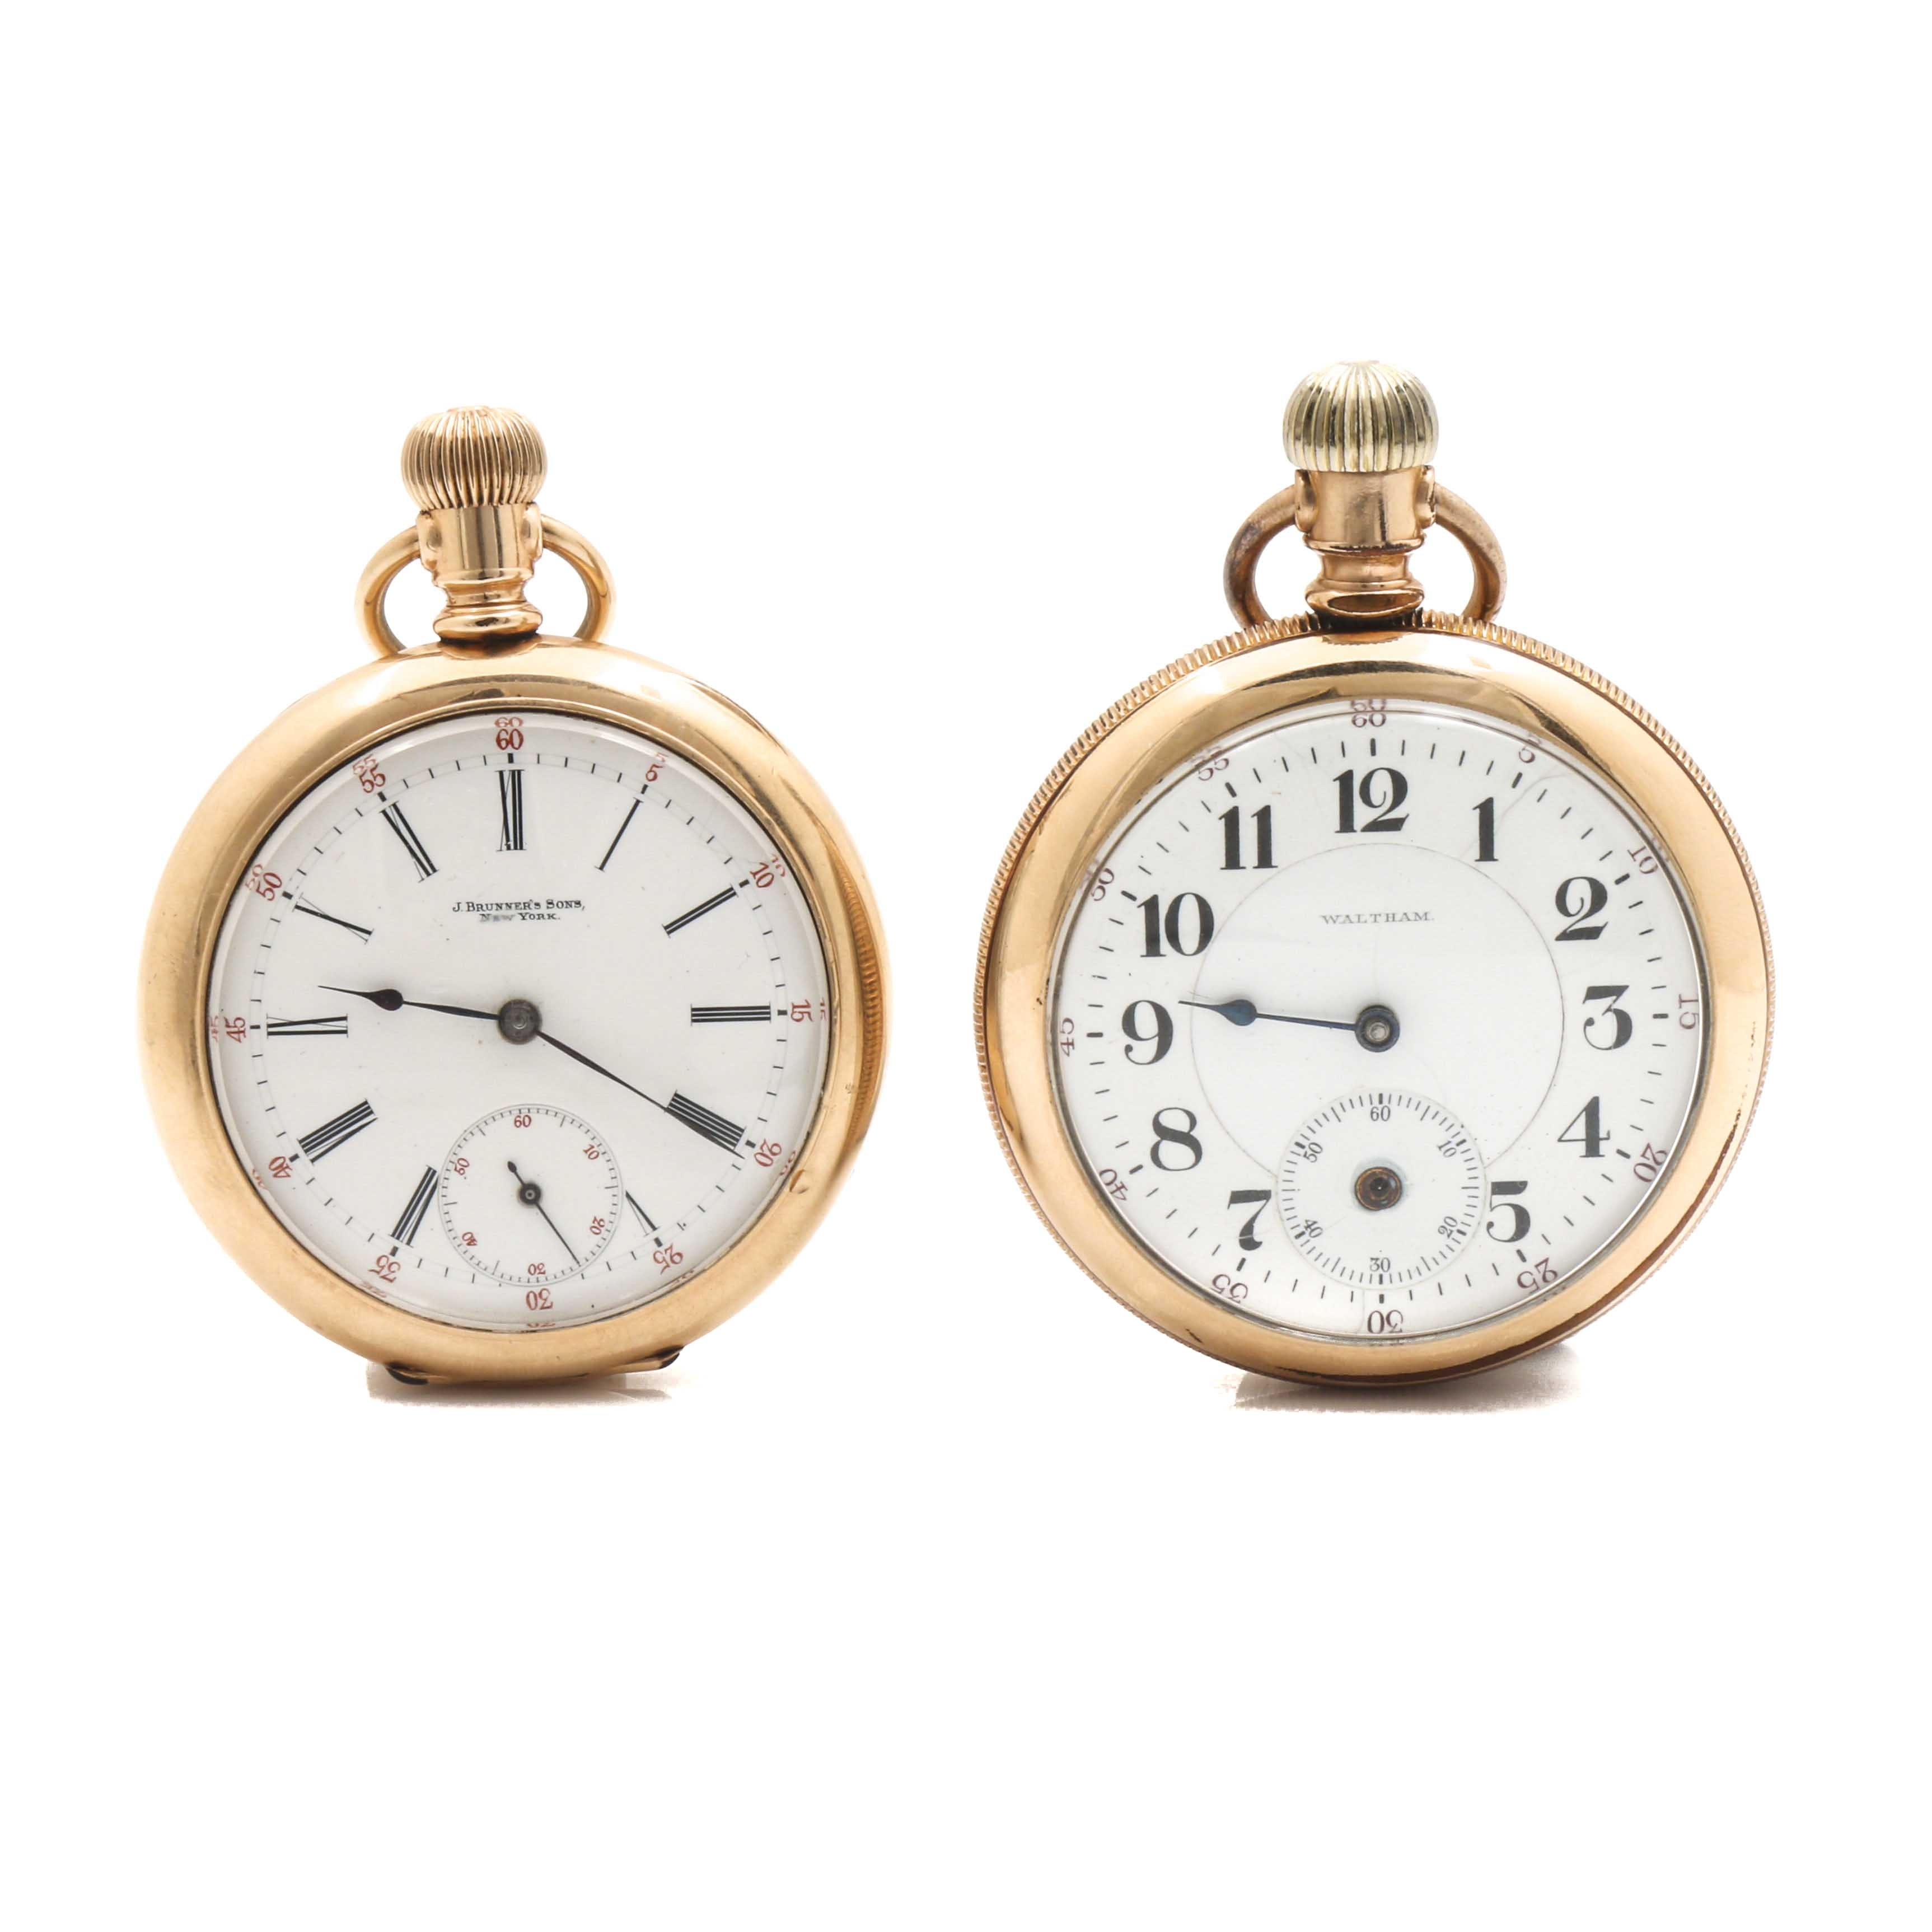 Waltham and J Brunner's Sons Yellow Gold FIlled Open Face Pocket Watches